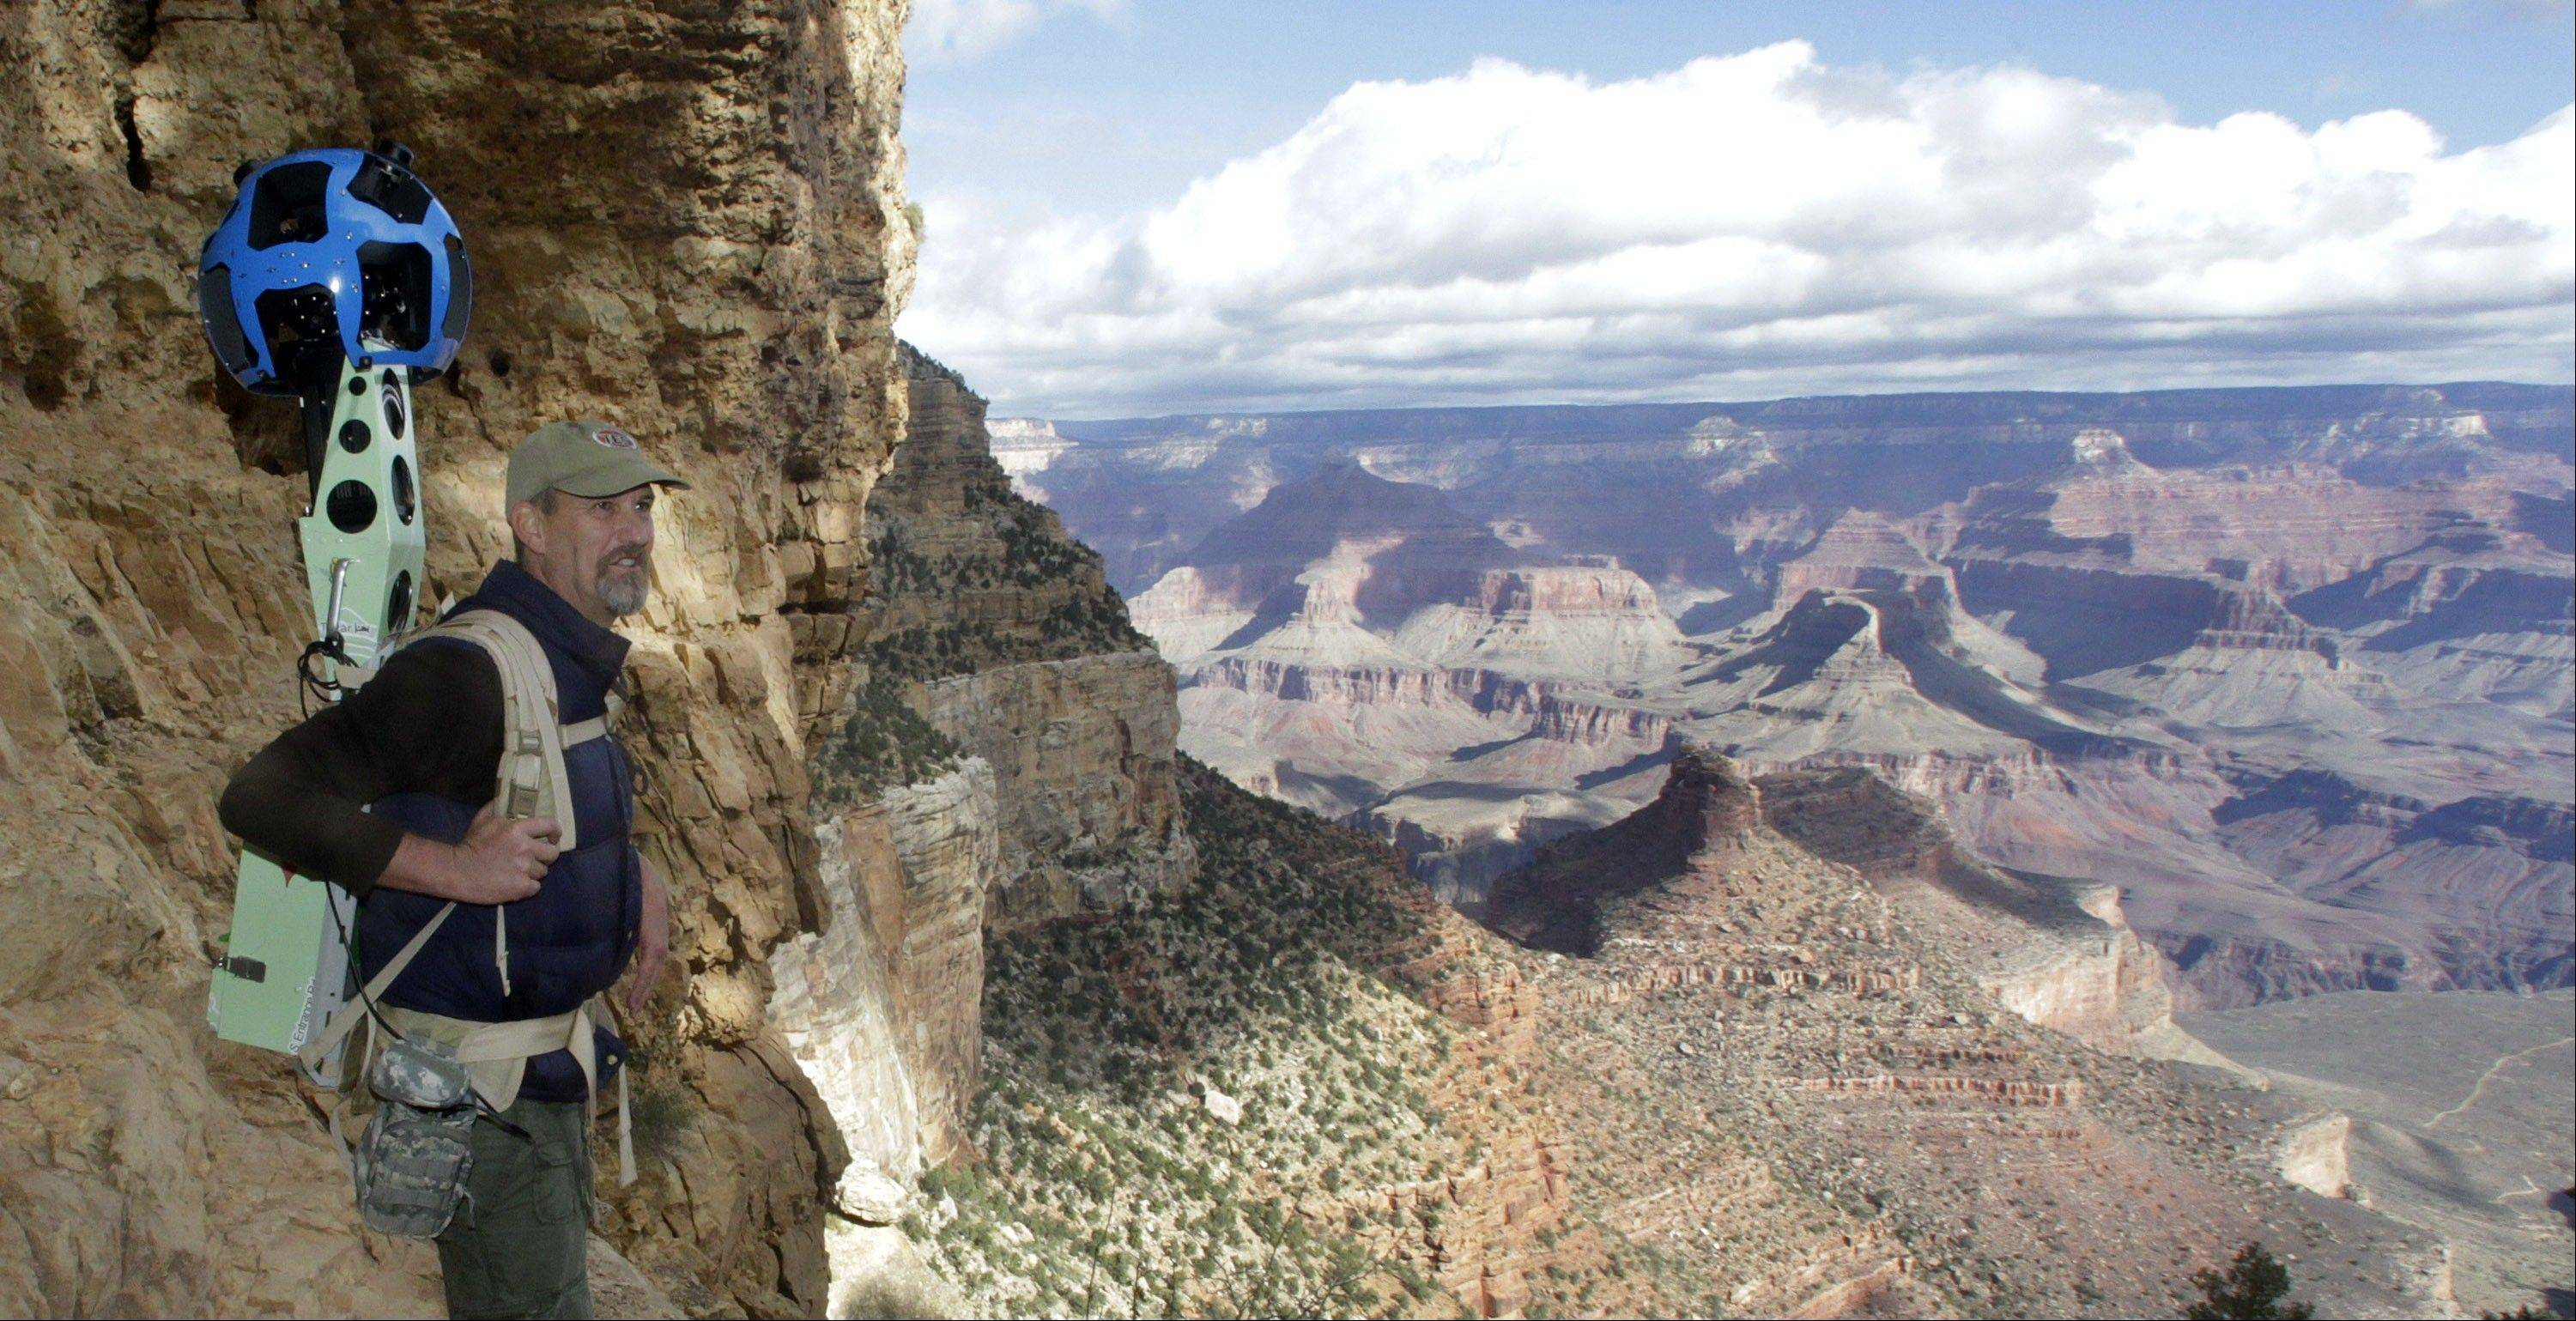 Google operations manager Steve Silverman stands along the canyon wall wearing the Trekker during a demonstration along the Bright Angel Trail at the South Rim of the Grand Canyon National Park in Arizona. The search engine giant is using the nearly 40-pound, backpack-sized camera unit to showcase the Grand Canyon's most popular hiking trails on the South Rim and other off-road sites. It's about 4 feet in height when set on the ground, and when worn, the camera system extends 2 feet above the operator's shoulders.